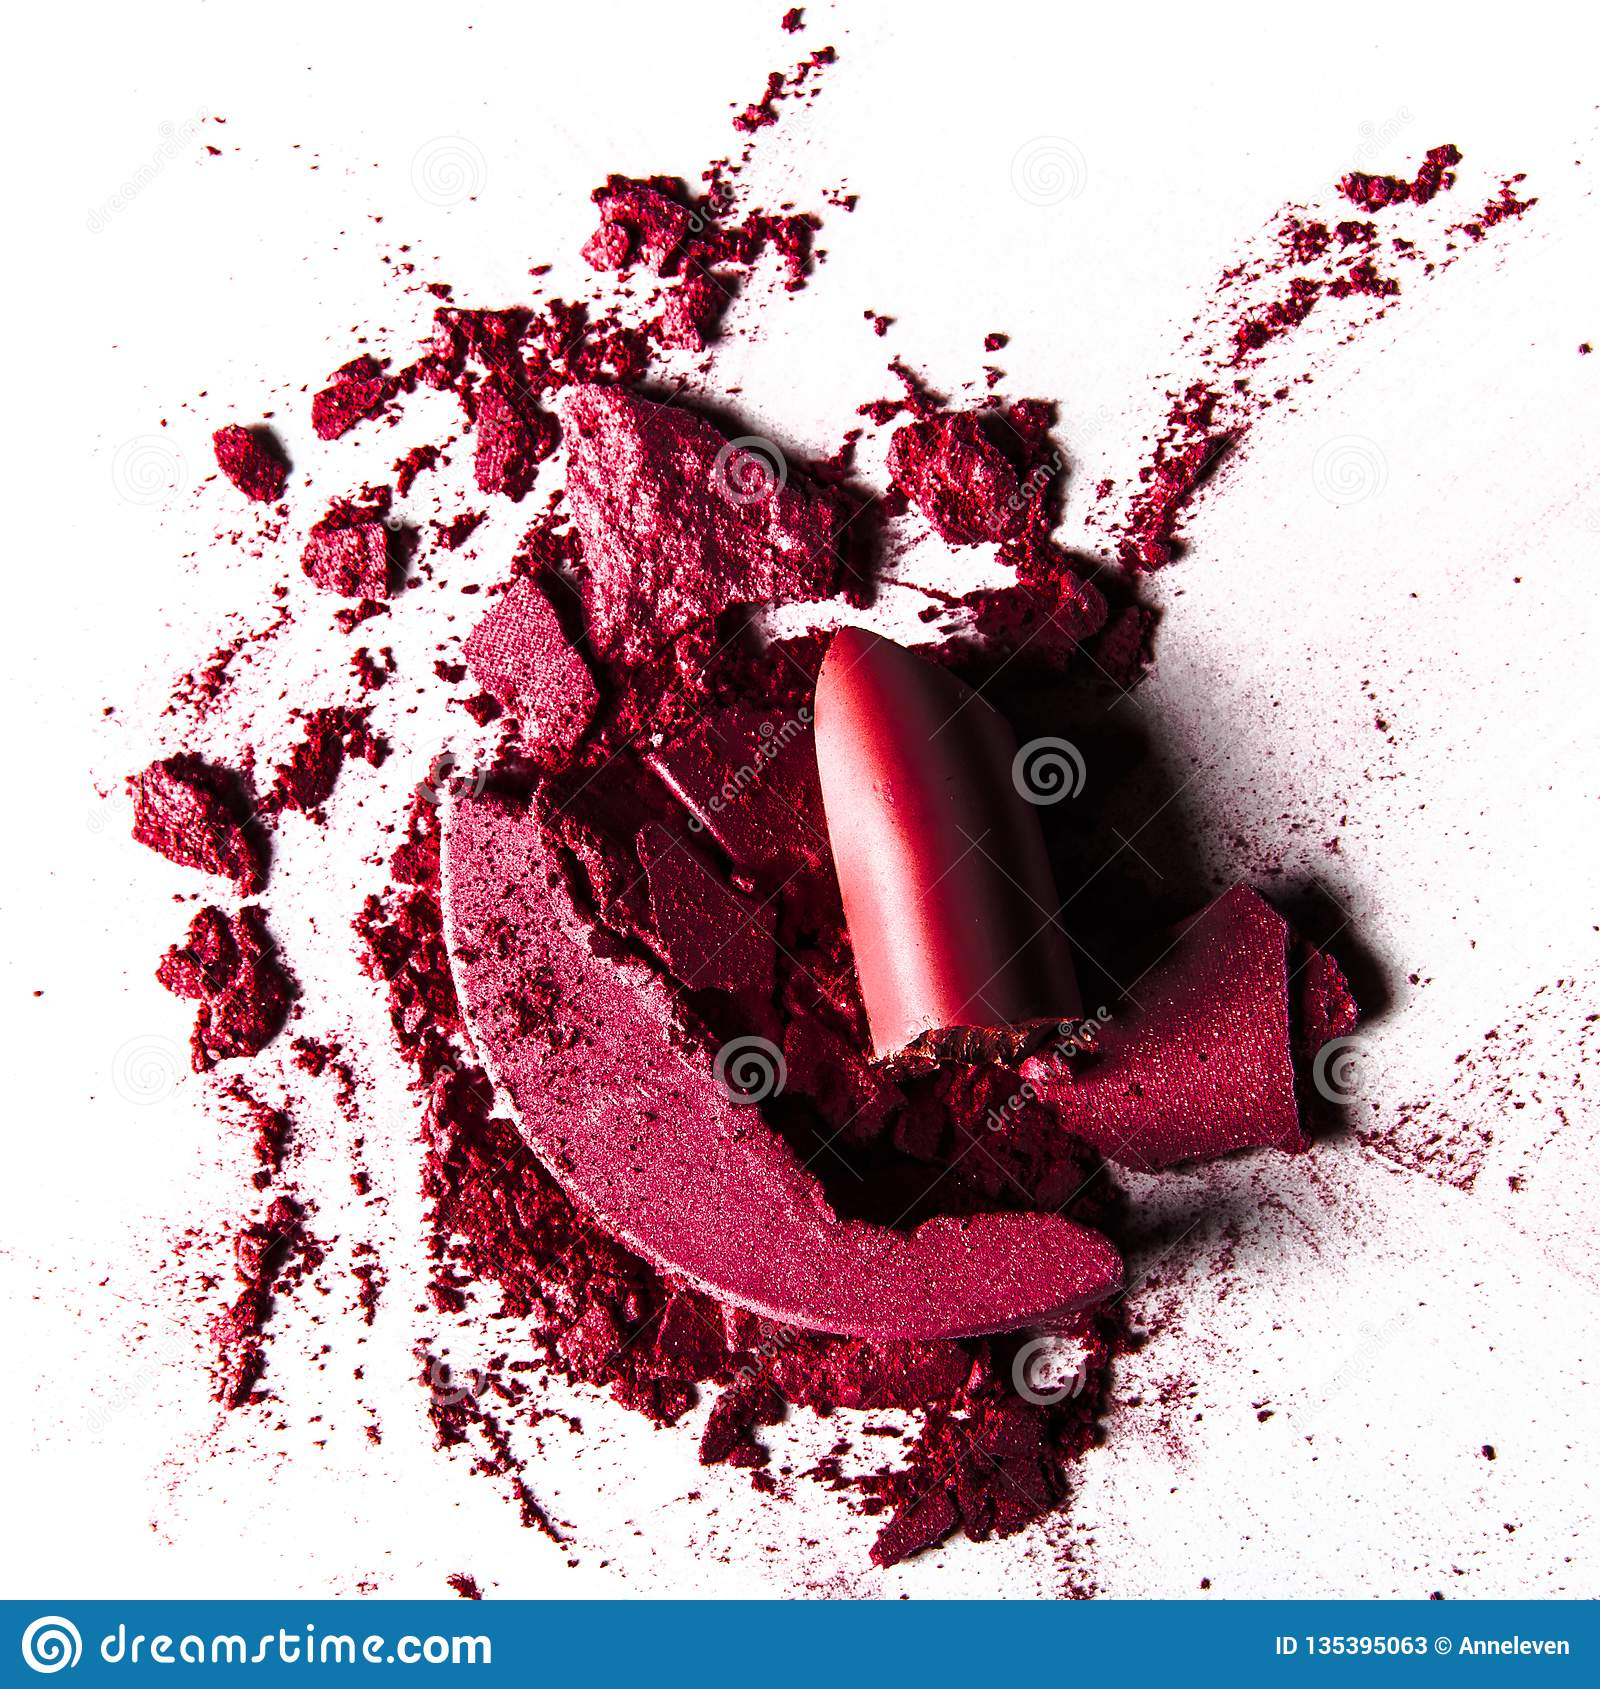 crushed make-up products - beauty and cosmetics styled concept